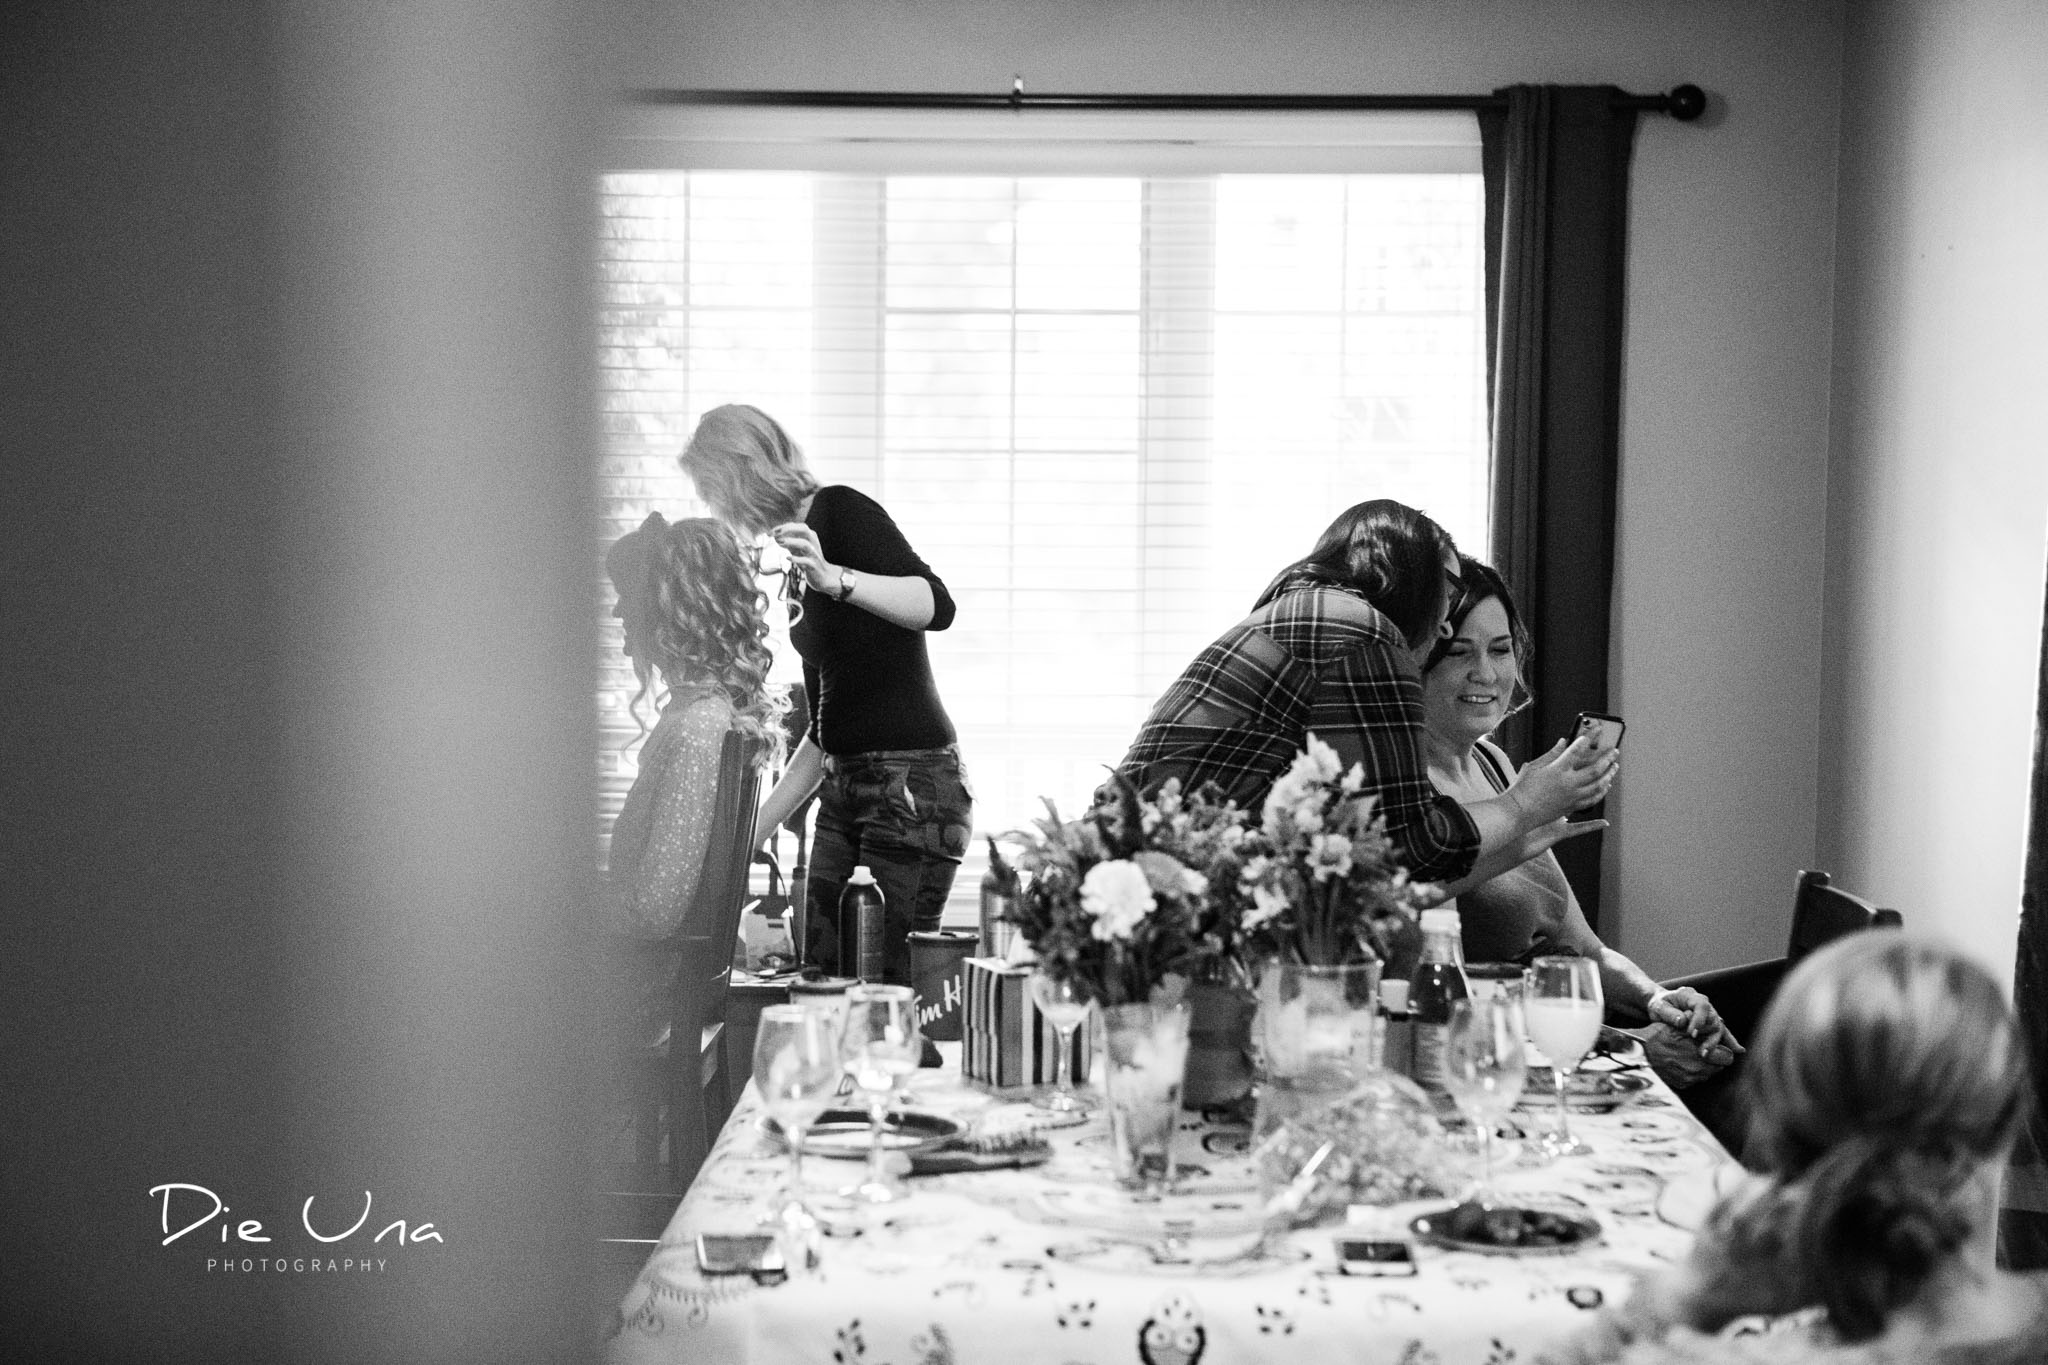 black and white wedding photography bride and MOB getting ready for wedding day.jpg